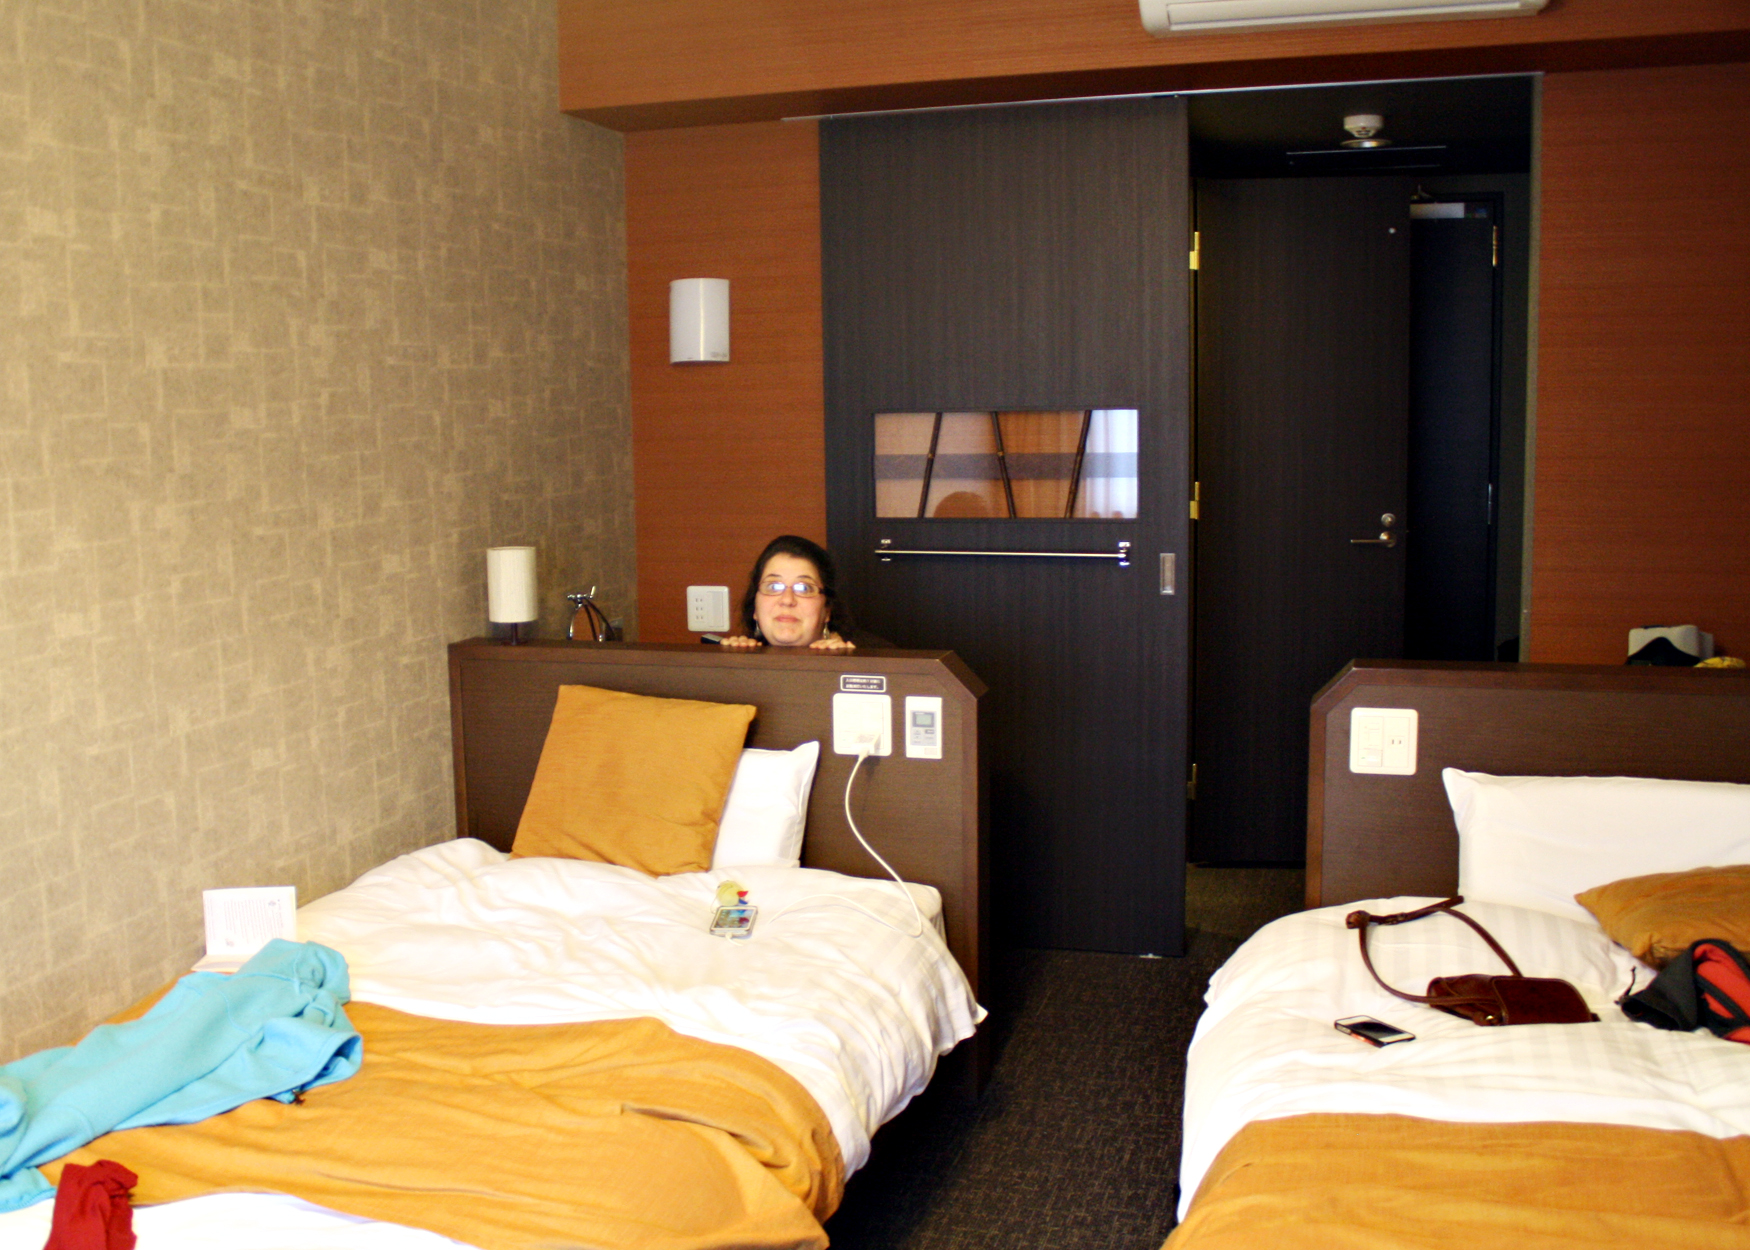 In kyoto japan part 6 kimberly renee design for Design hotel kyoto